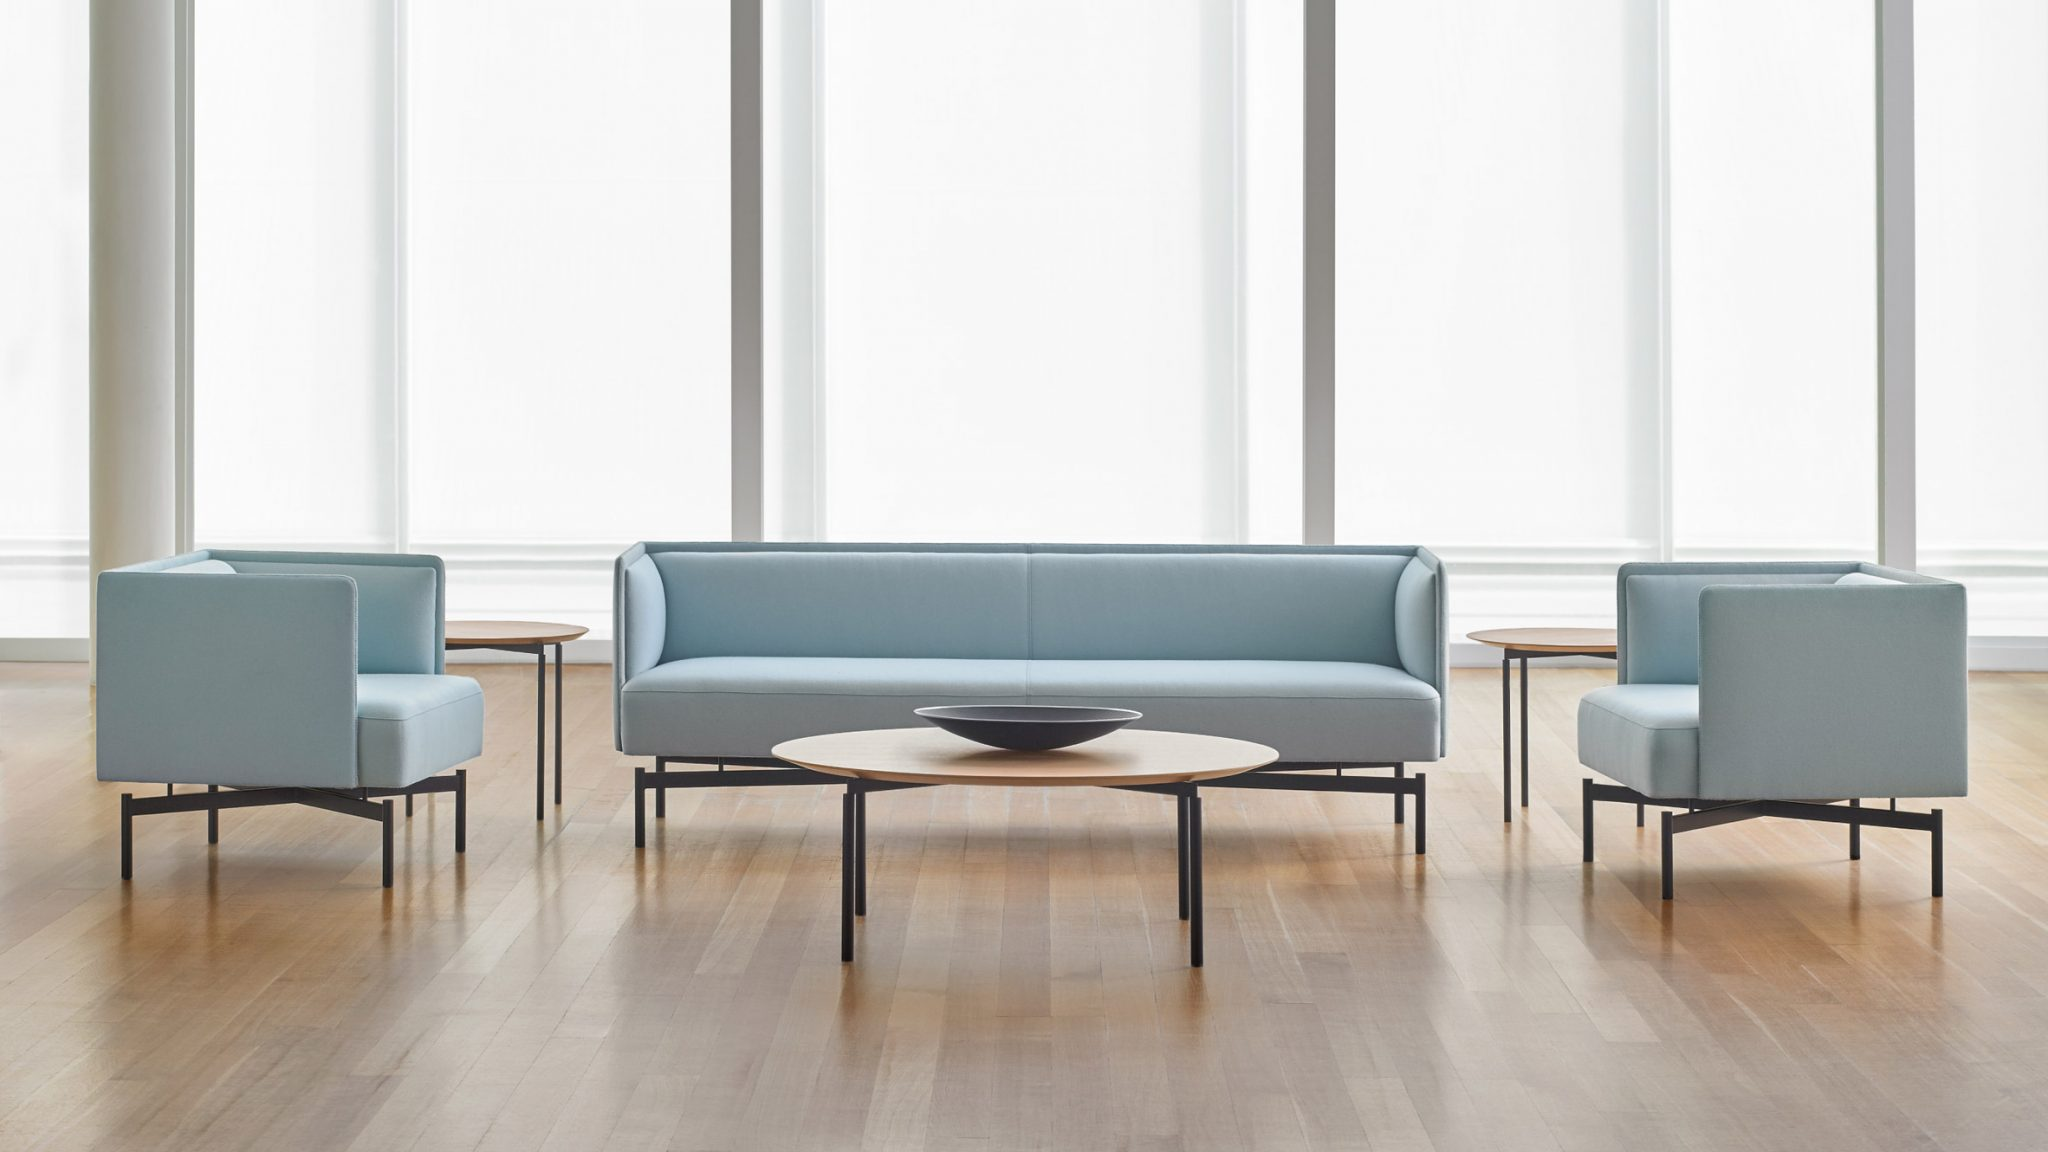 new-collection-charles-pollock-bernhardt-design-new-york-showroom-chair-furniture-design_dezeen_2364_col_4